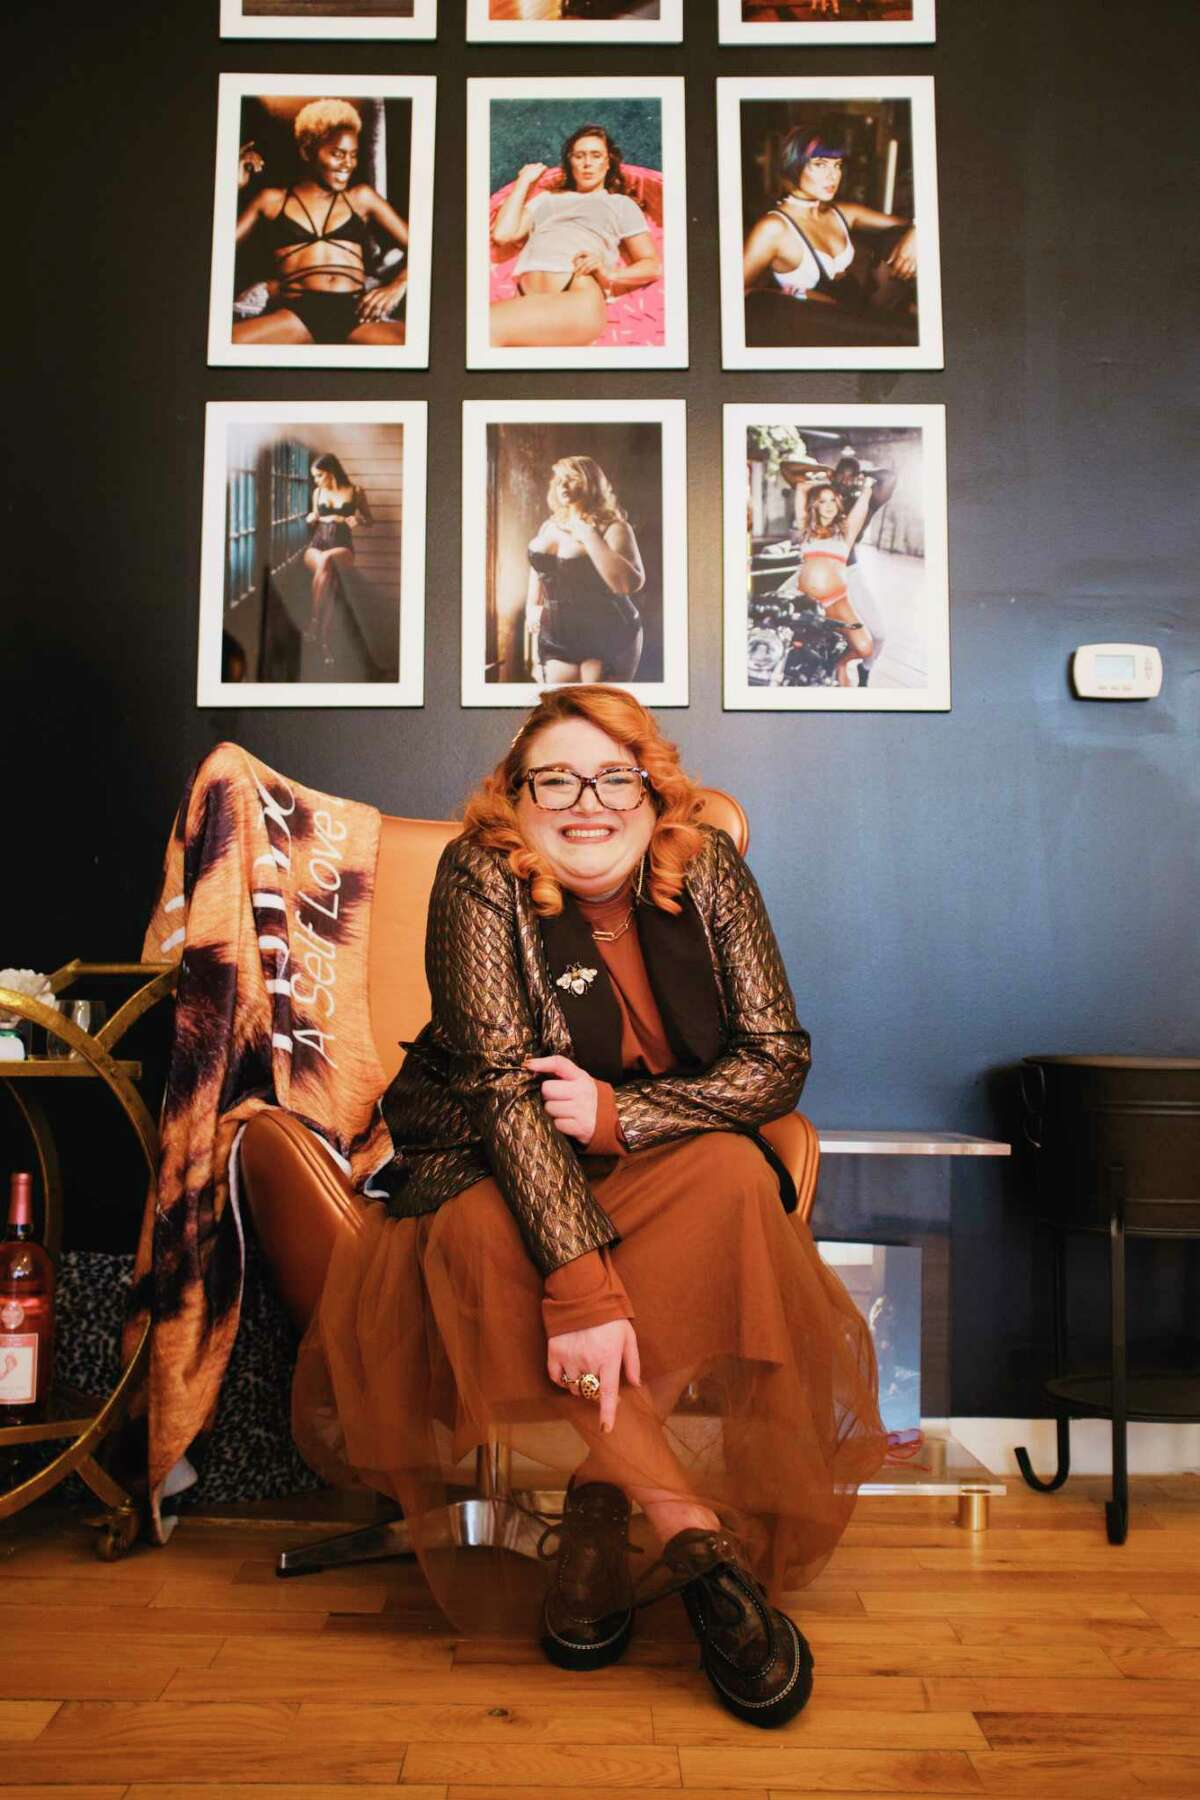 Lindsay Rae D'Ottavioowner of Self Love Experience, at her studio on Thursday, March 11, 2021, in Troy, N.Y. (Paul Buckowski/Times Union)